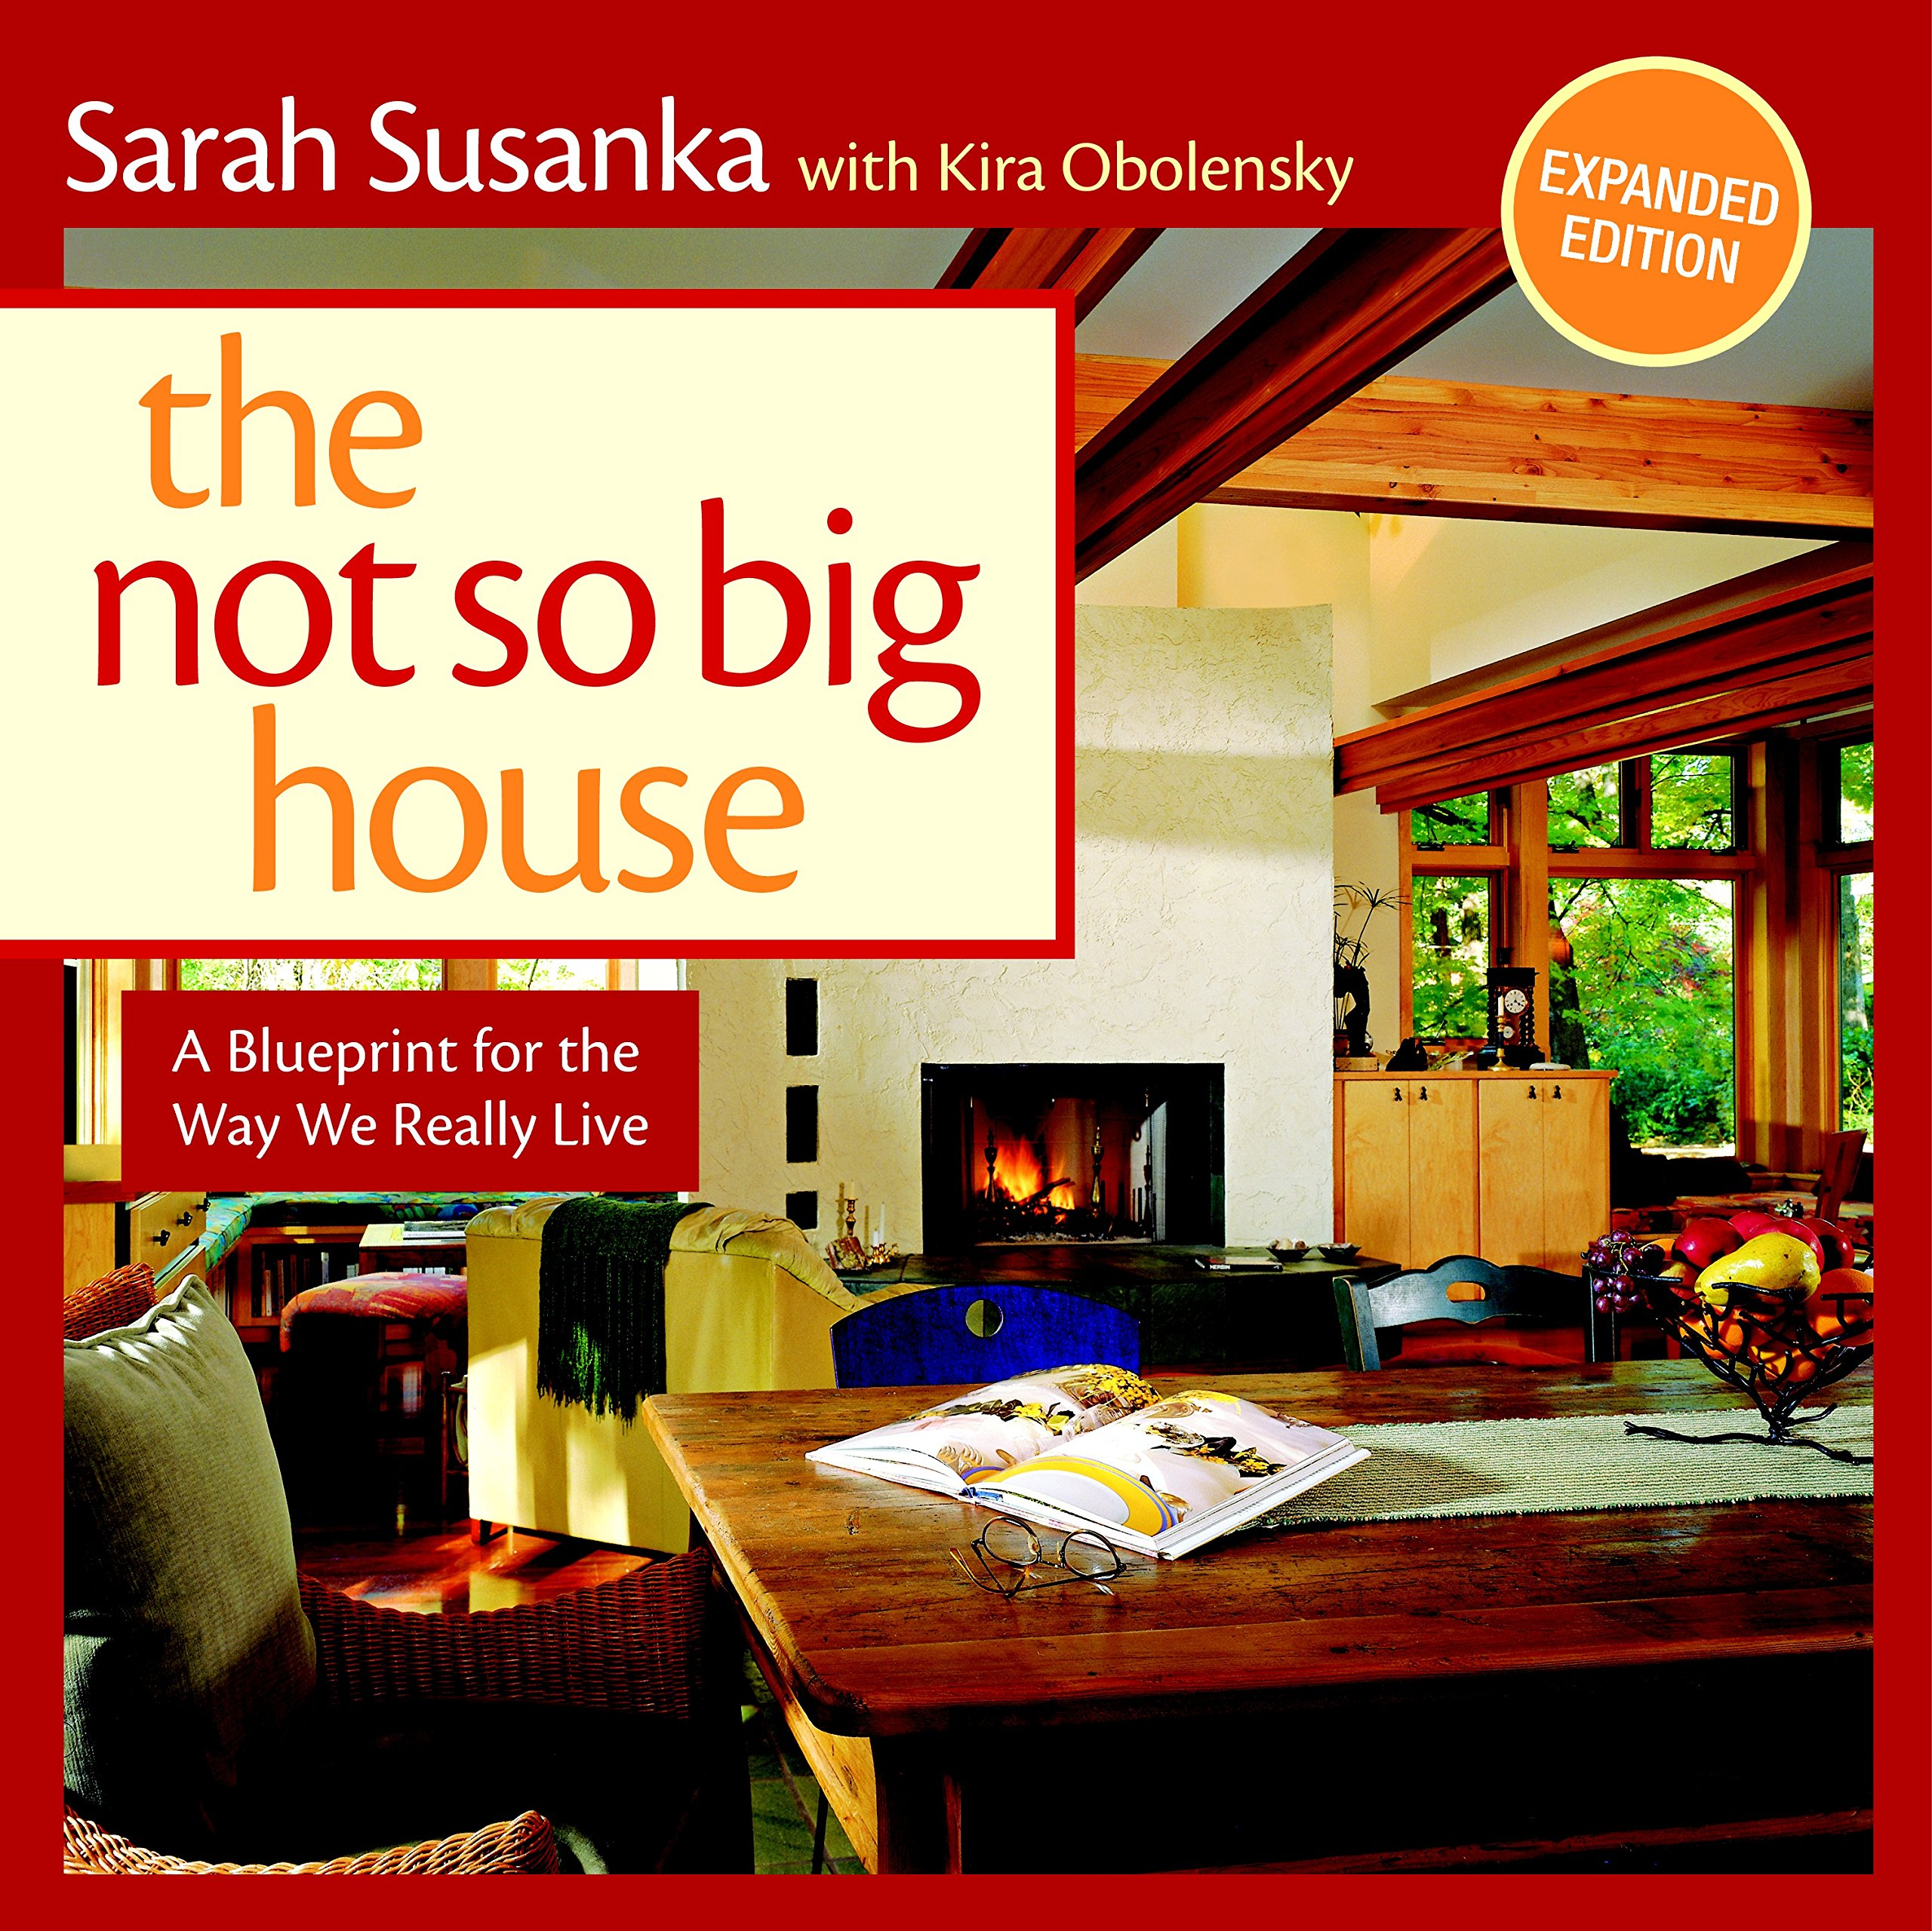 The not so big house a blueprint for the way we really live sarah the not so big house a blueprint for the way we really live sarah susanka kira obolensky 9781600851506 amazon books malvernweather Choice Image